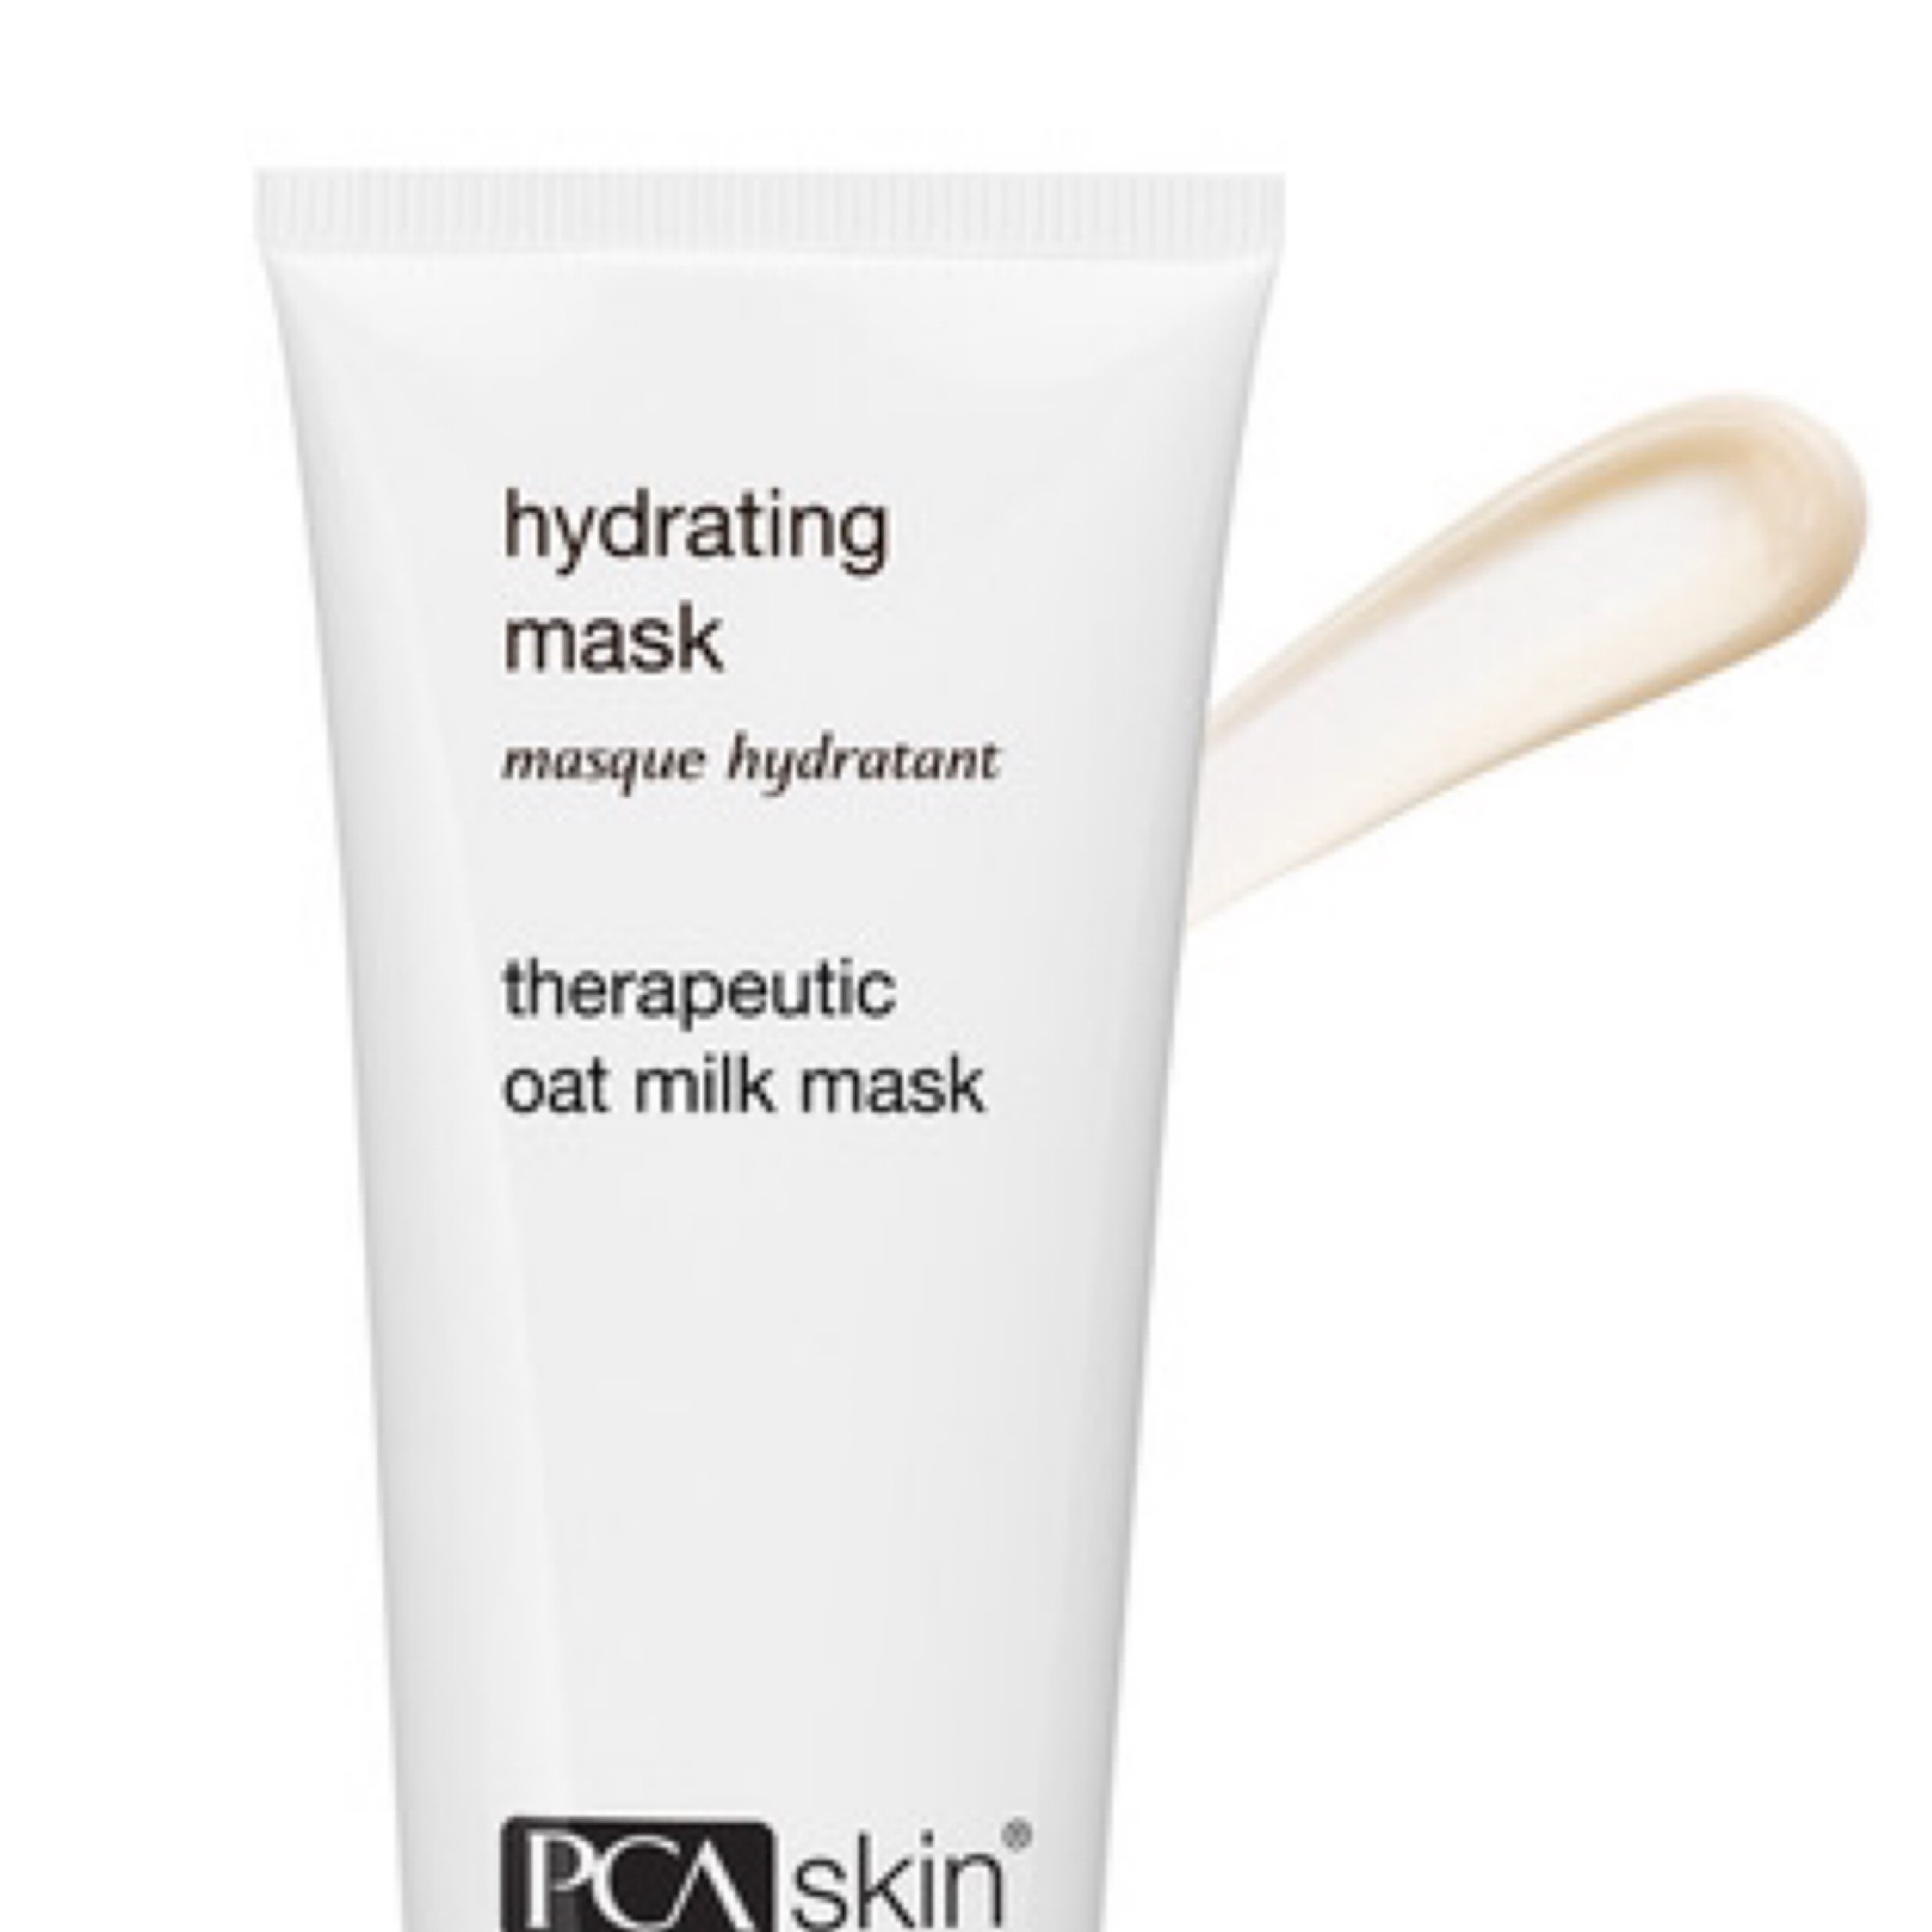 Hydrating Oat Milk Mask